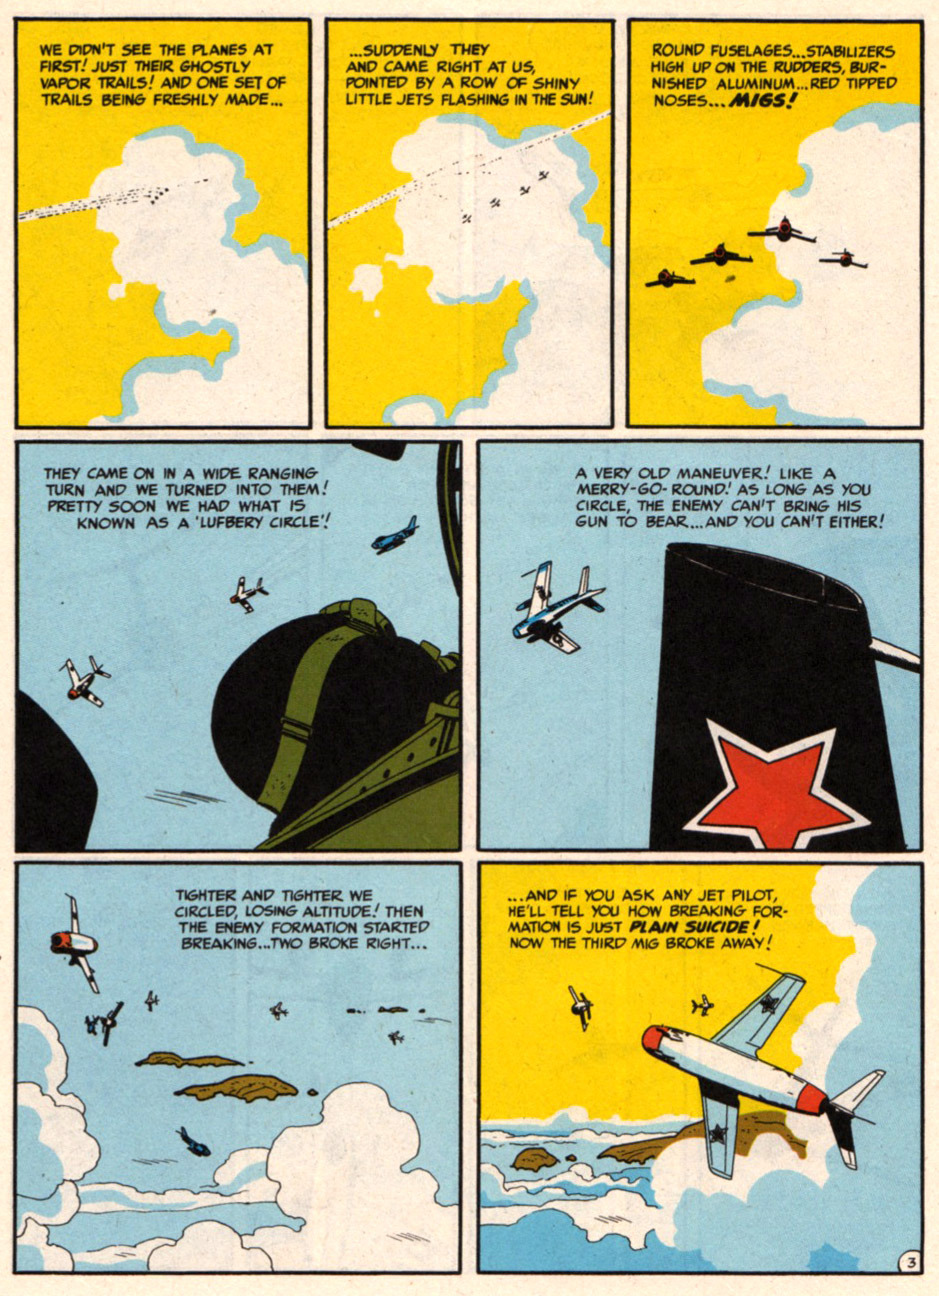 tothlove:    F86 Sabre Jet - Harvey Kurtzman and Alex Toth page 3